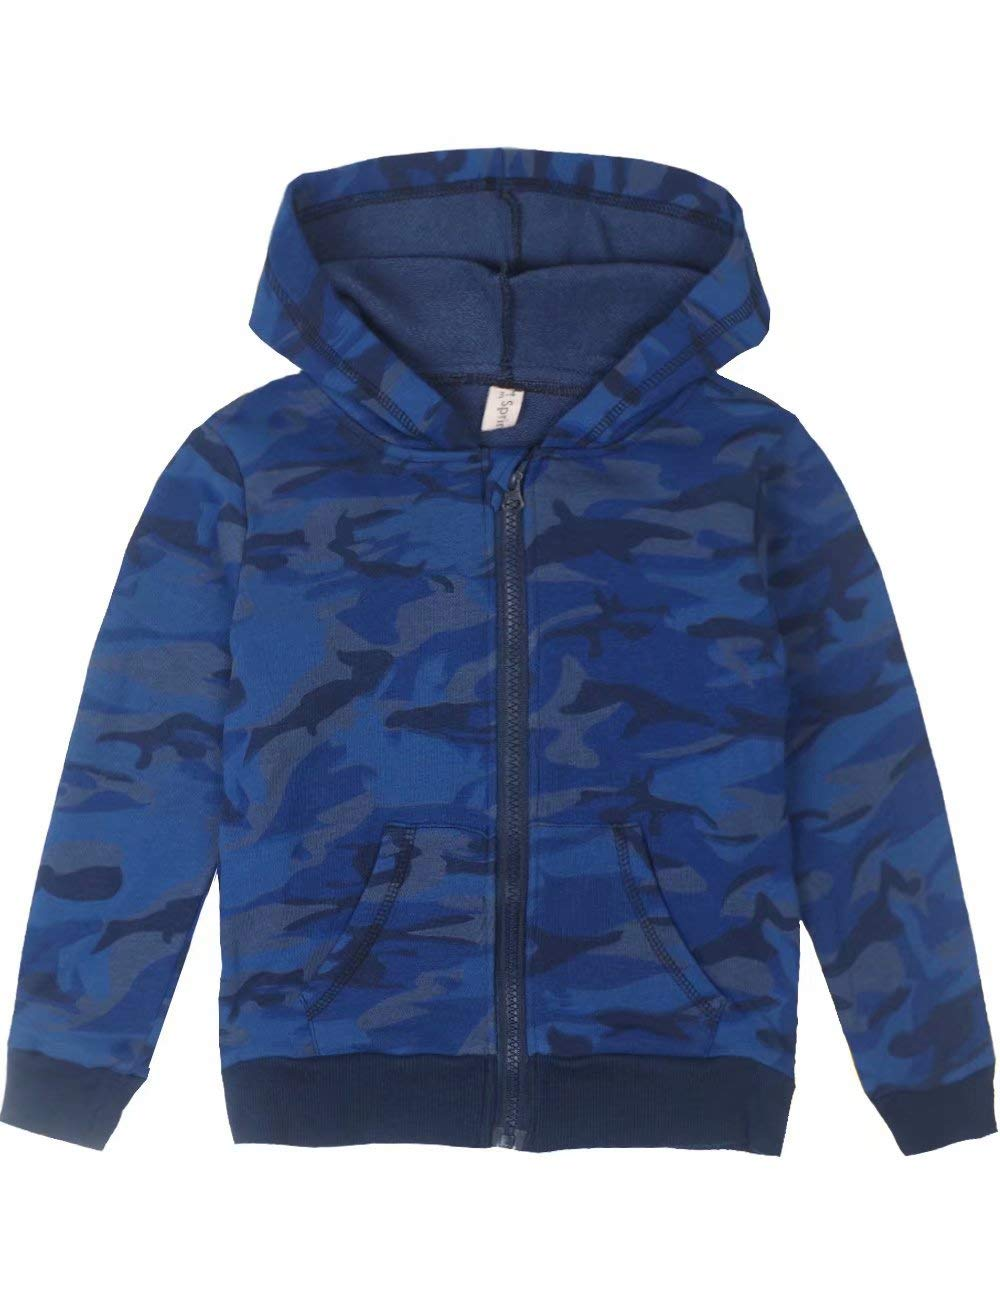 Spring&Gege Youth Classic Full Zip Camo Hoodies Kids Camouflage Hooded Sweatshirt for Boys and Girls Size 9-10 Years Camo-Blue